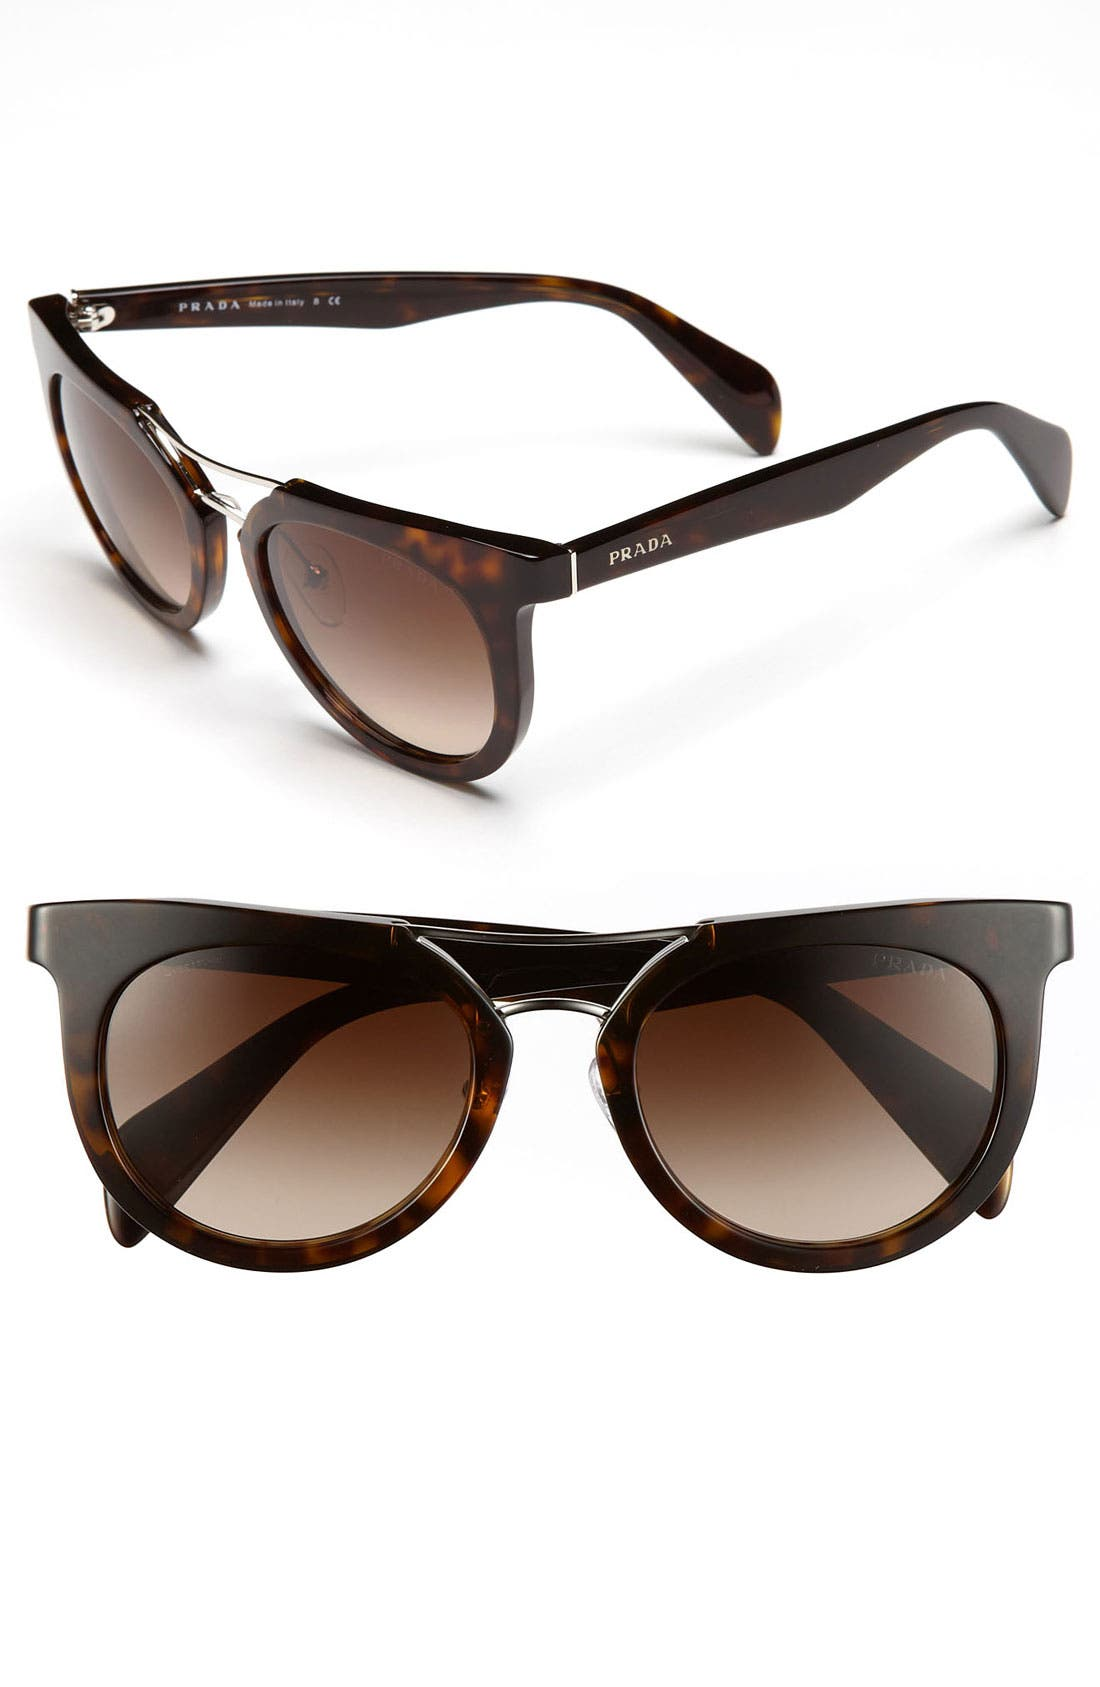 Alternate Image 1 Selected - Prada 'Timeless' 51mm Sunglasses